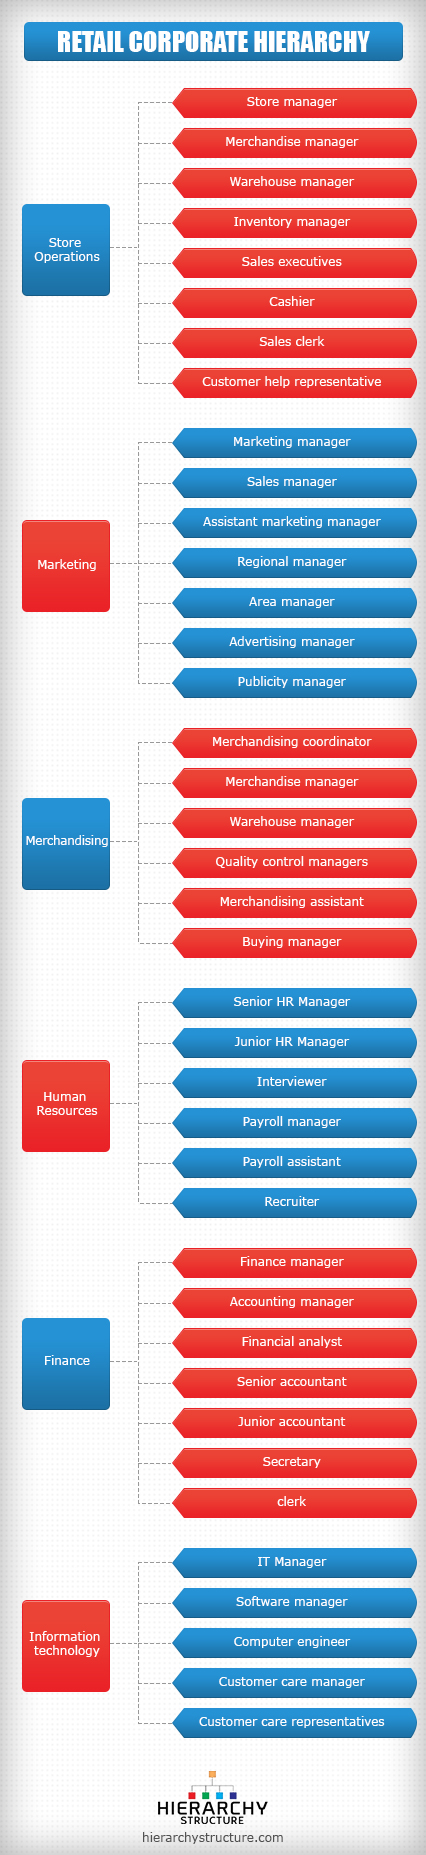 retail corporate hierarchy